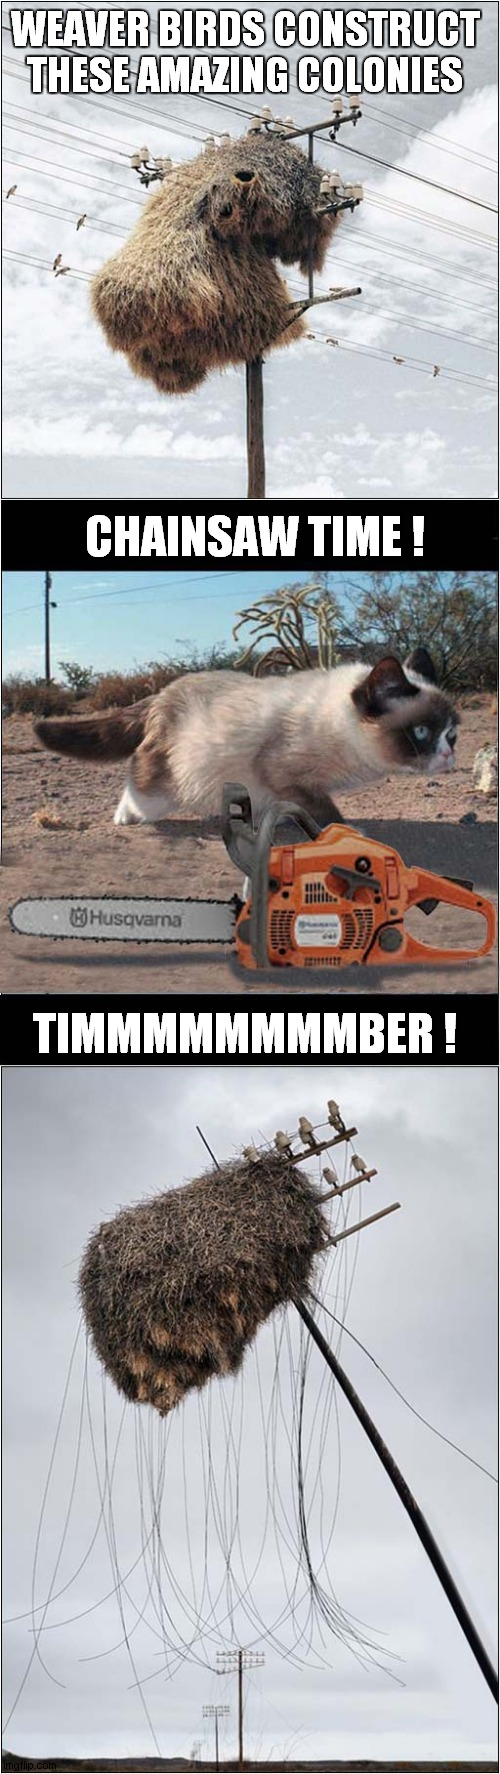 Grumpy Vs Weaver Birds |  WEAVER BIRDS CONSTRUCT THESE AMAZING COLONIES; CHAINSAW TIME ! TIMMMMMMMMBER ! | image tagged in fun,grumpy cat,birds,chainsaw | made w/ Imgflip meme maker